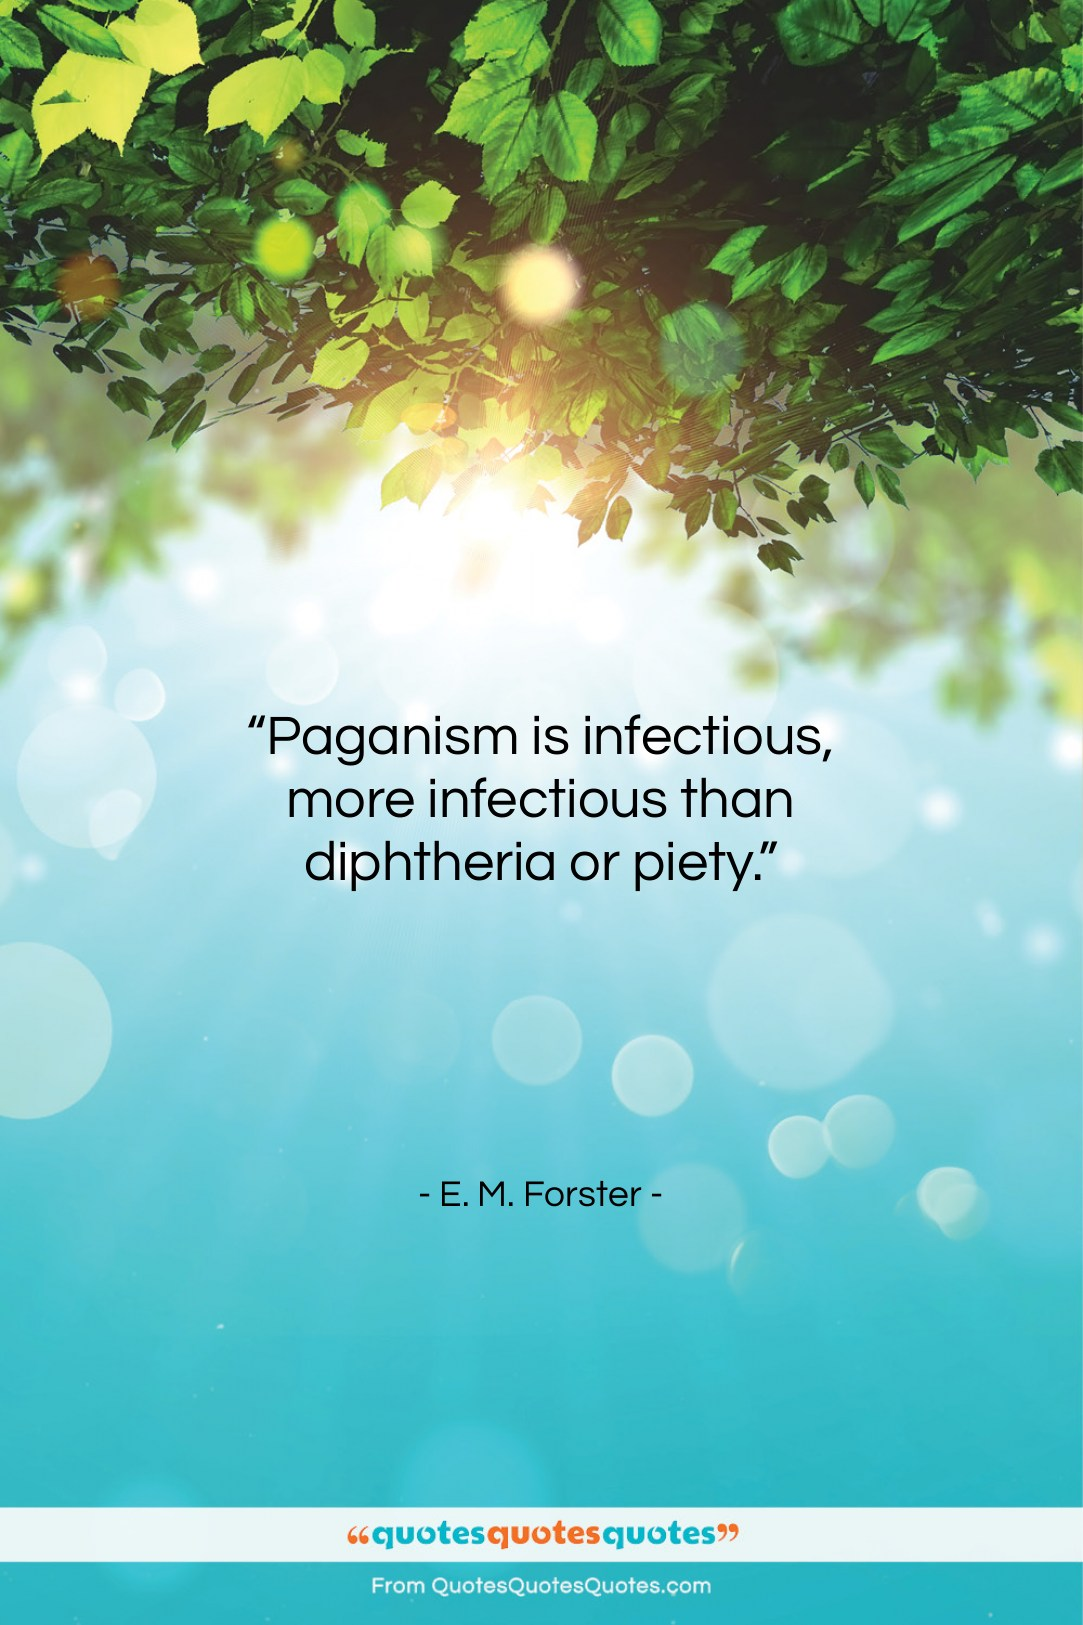 """E. M. Forster quote: """"Paganism is infectious, more infectious than diphtheria…""""- at QuotesQuotesQuotes.com"""